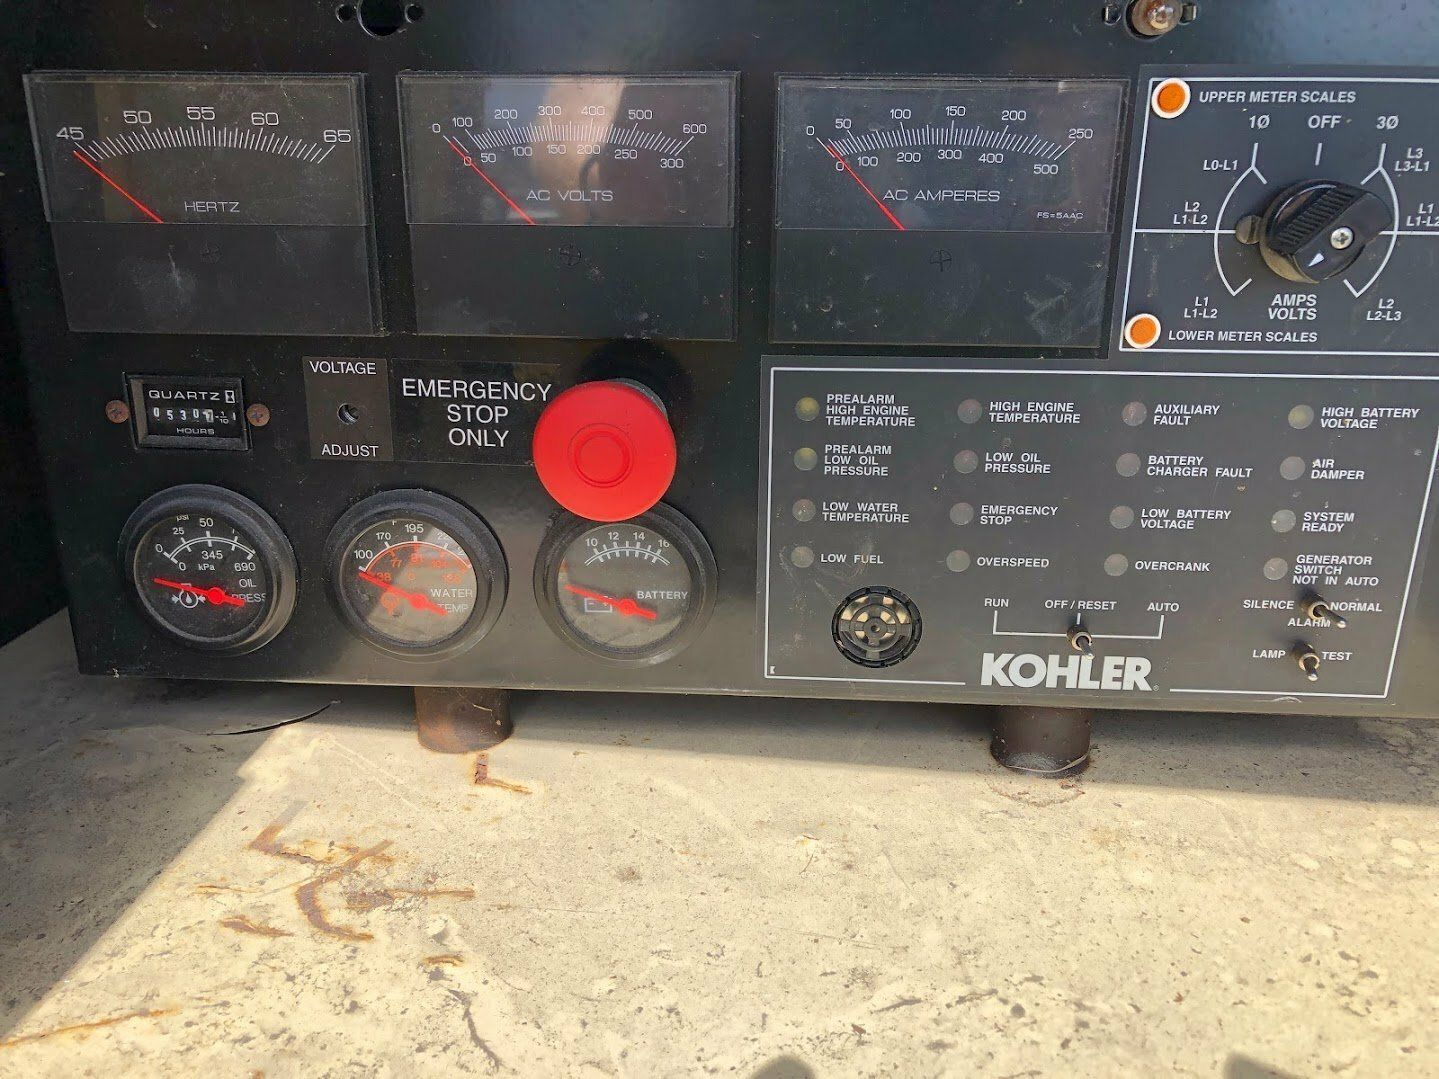 Kohler/GM Nat. Gas Generator set